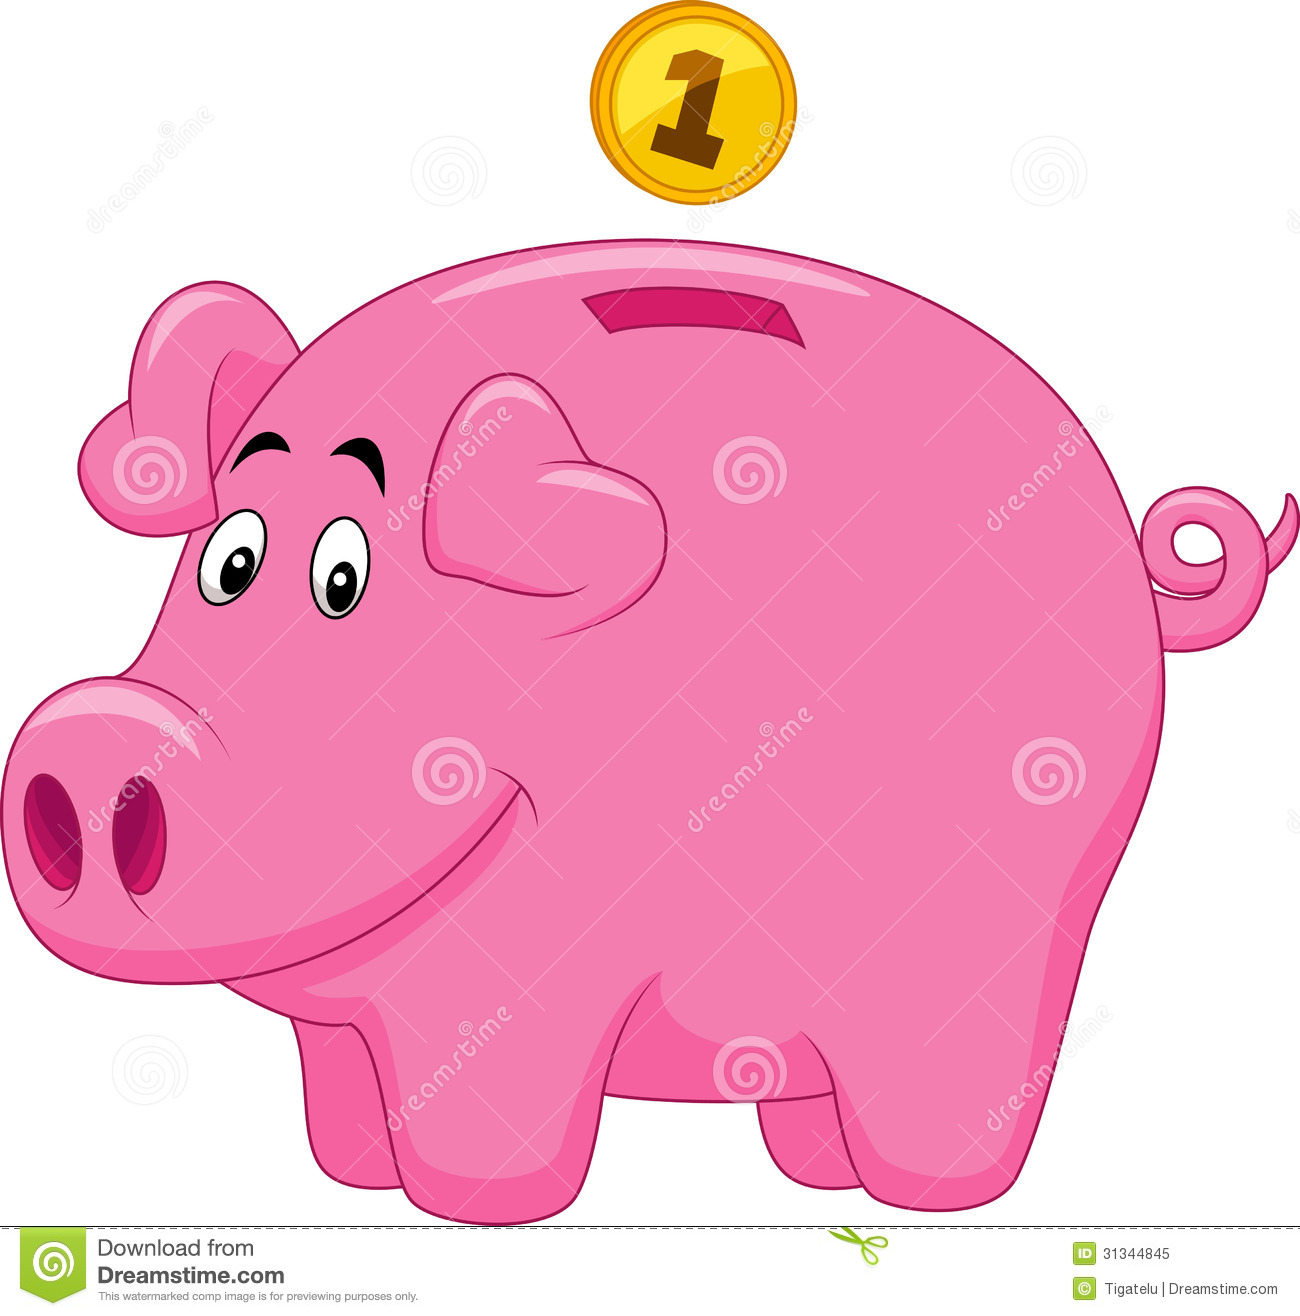 Animated piggy bank clipart banner download Cartoon piggy bank clipart - ClipartFest banner download